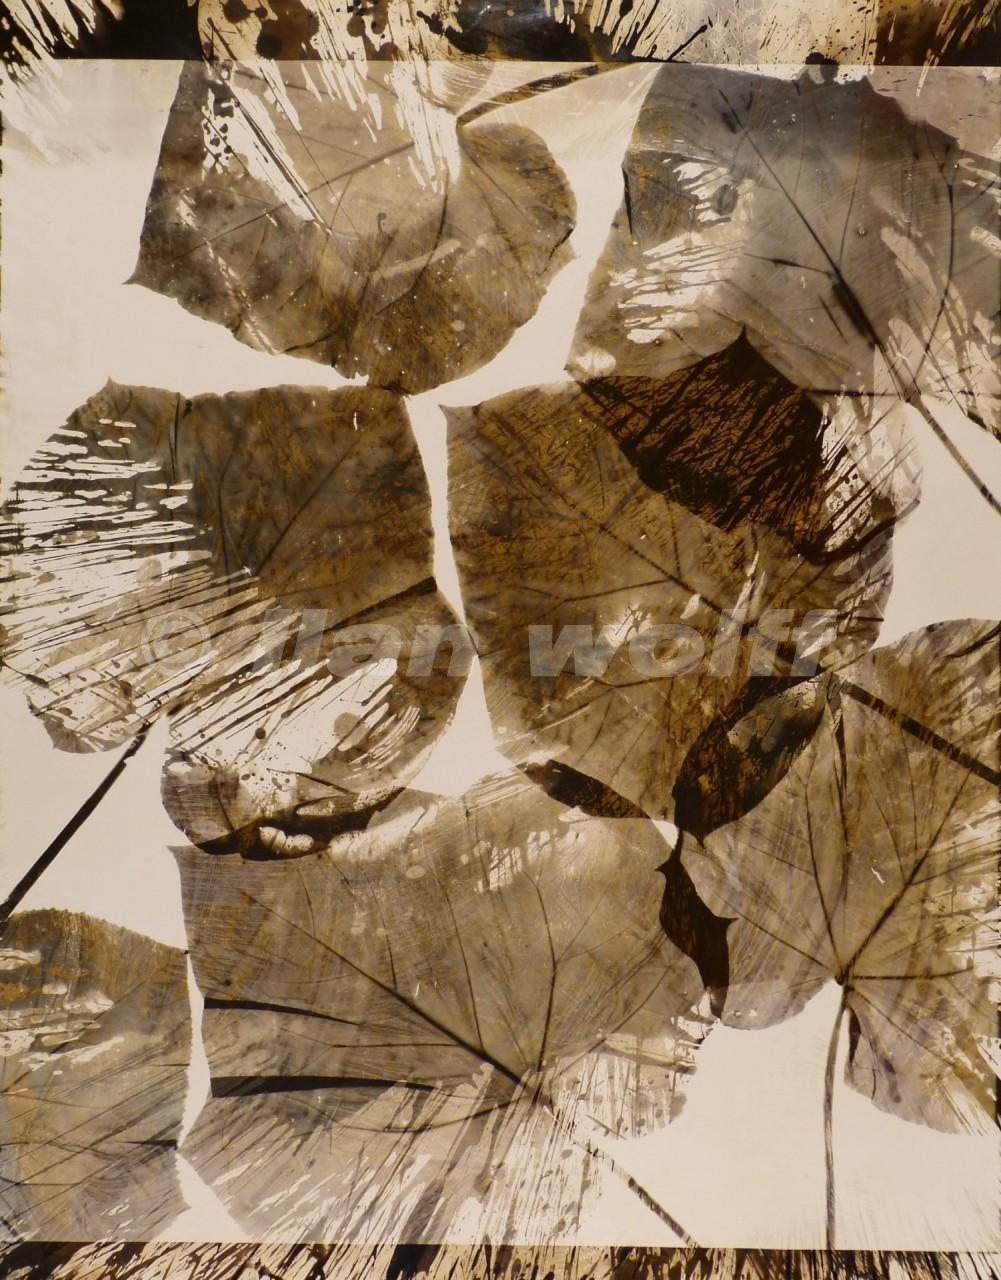 leaves-no-1/2-2005/12-125x165cm